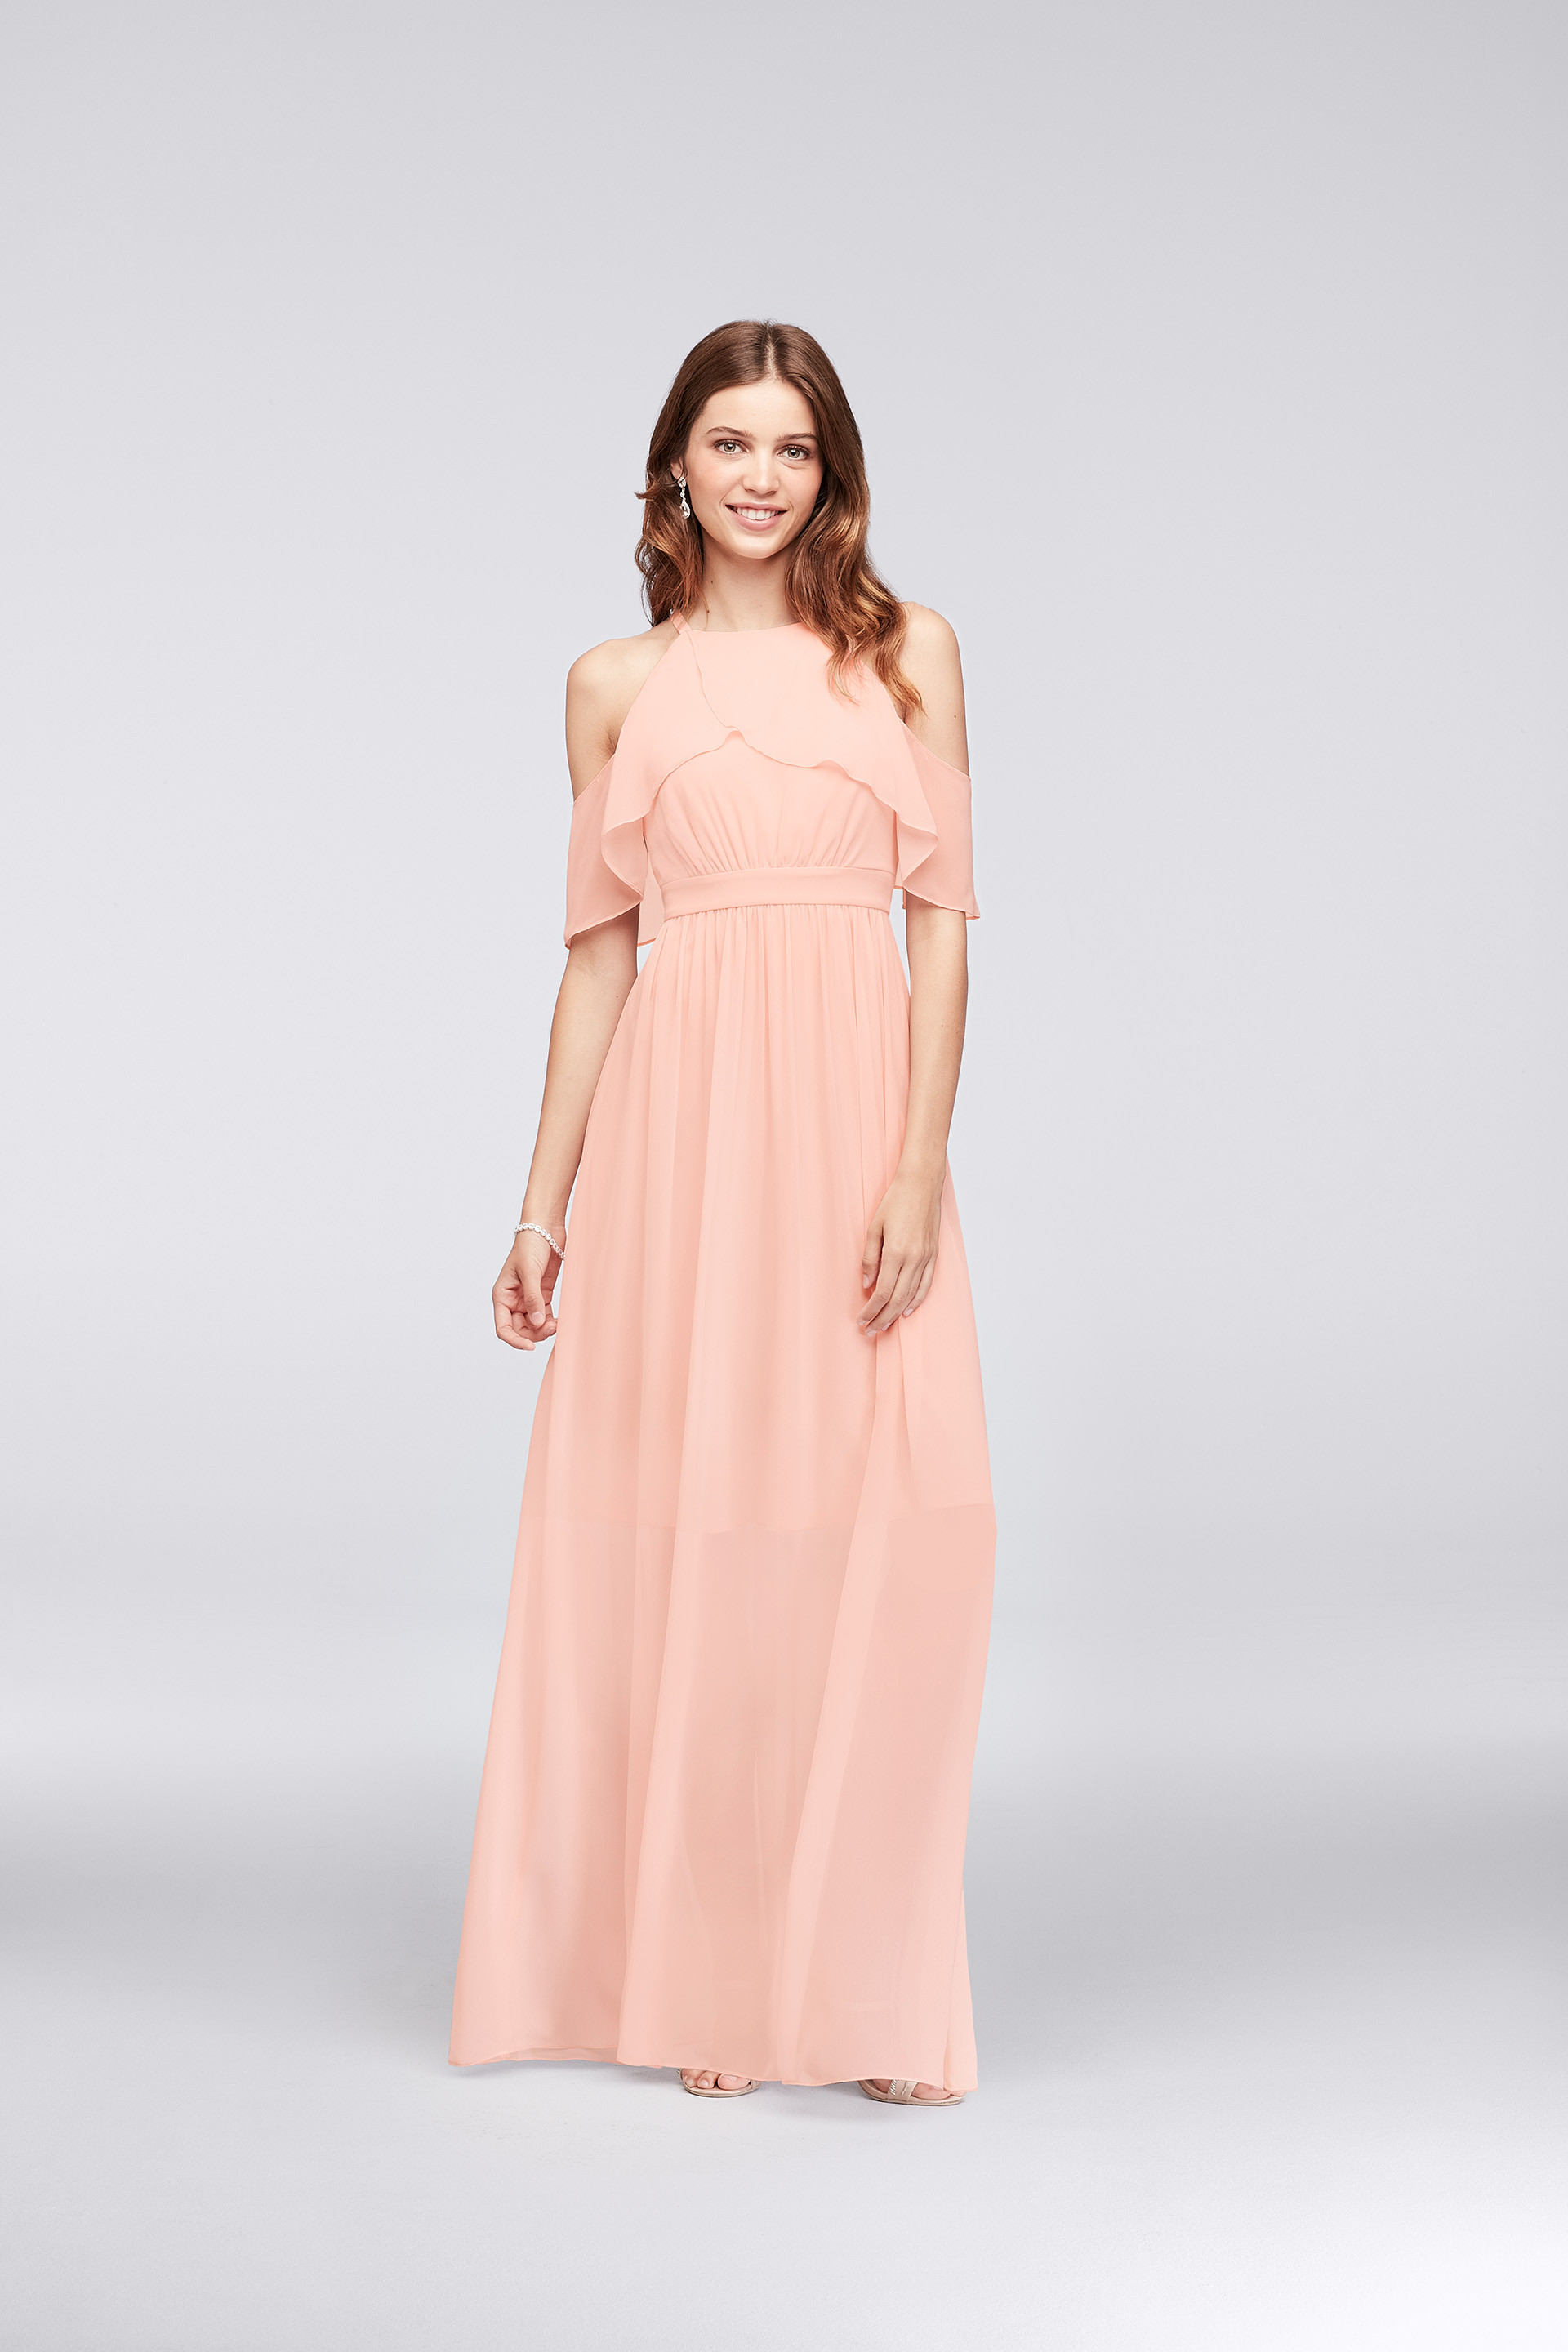 Davids bridal to release bridesmaid dresses for under 100 for Wedding dresses bridesmaid